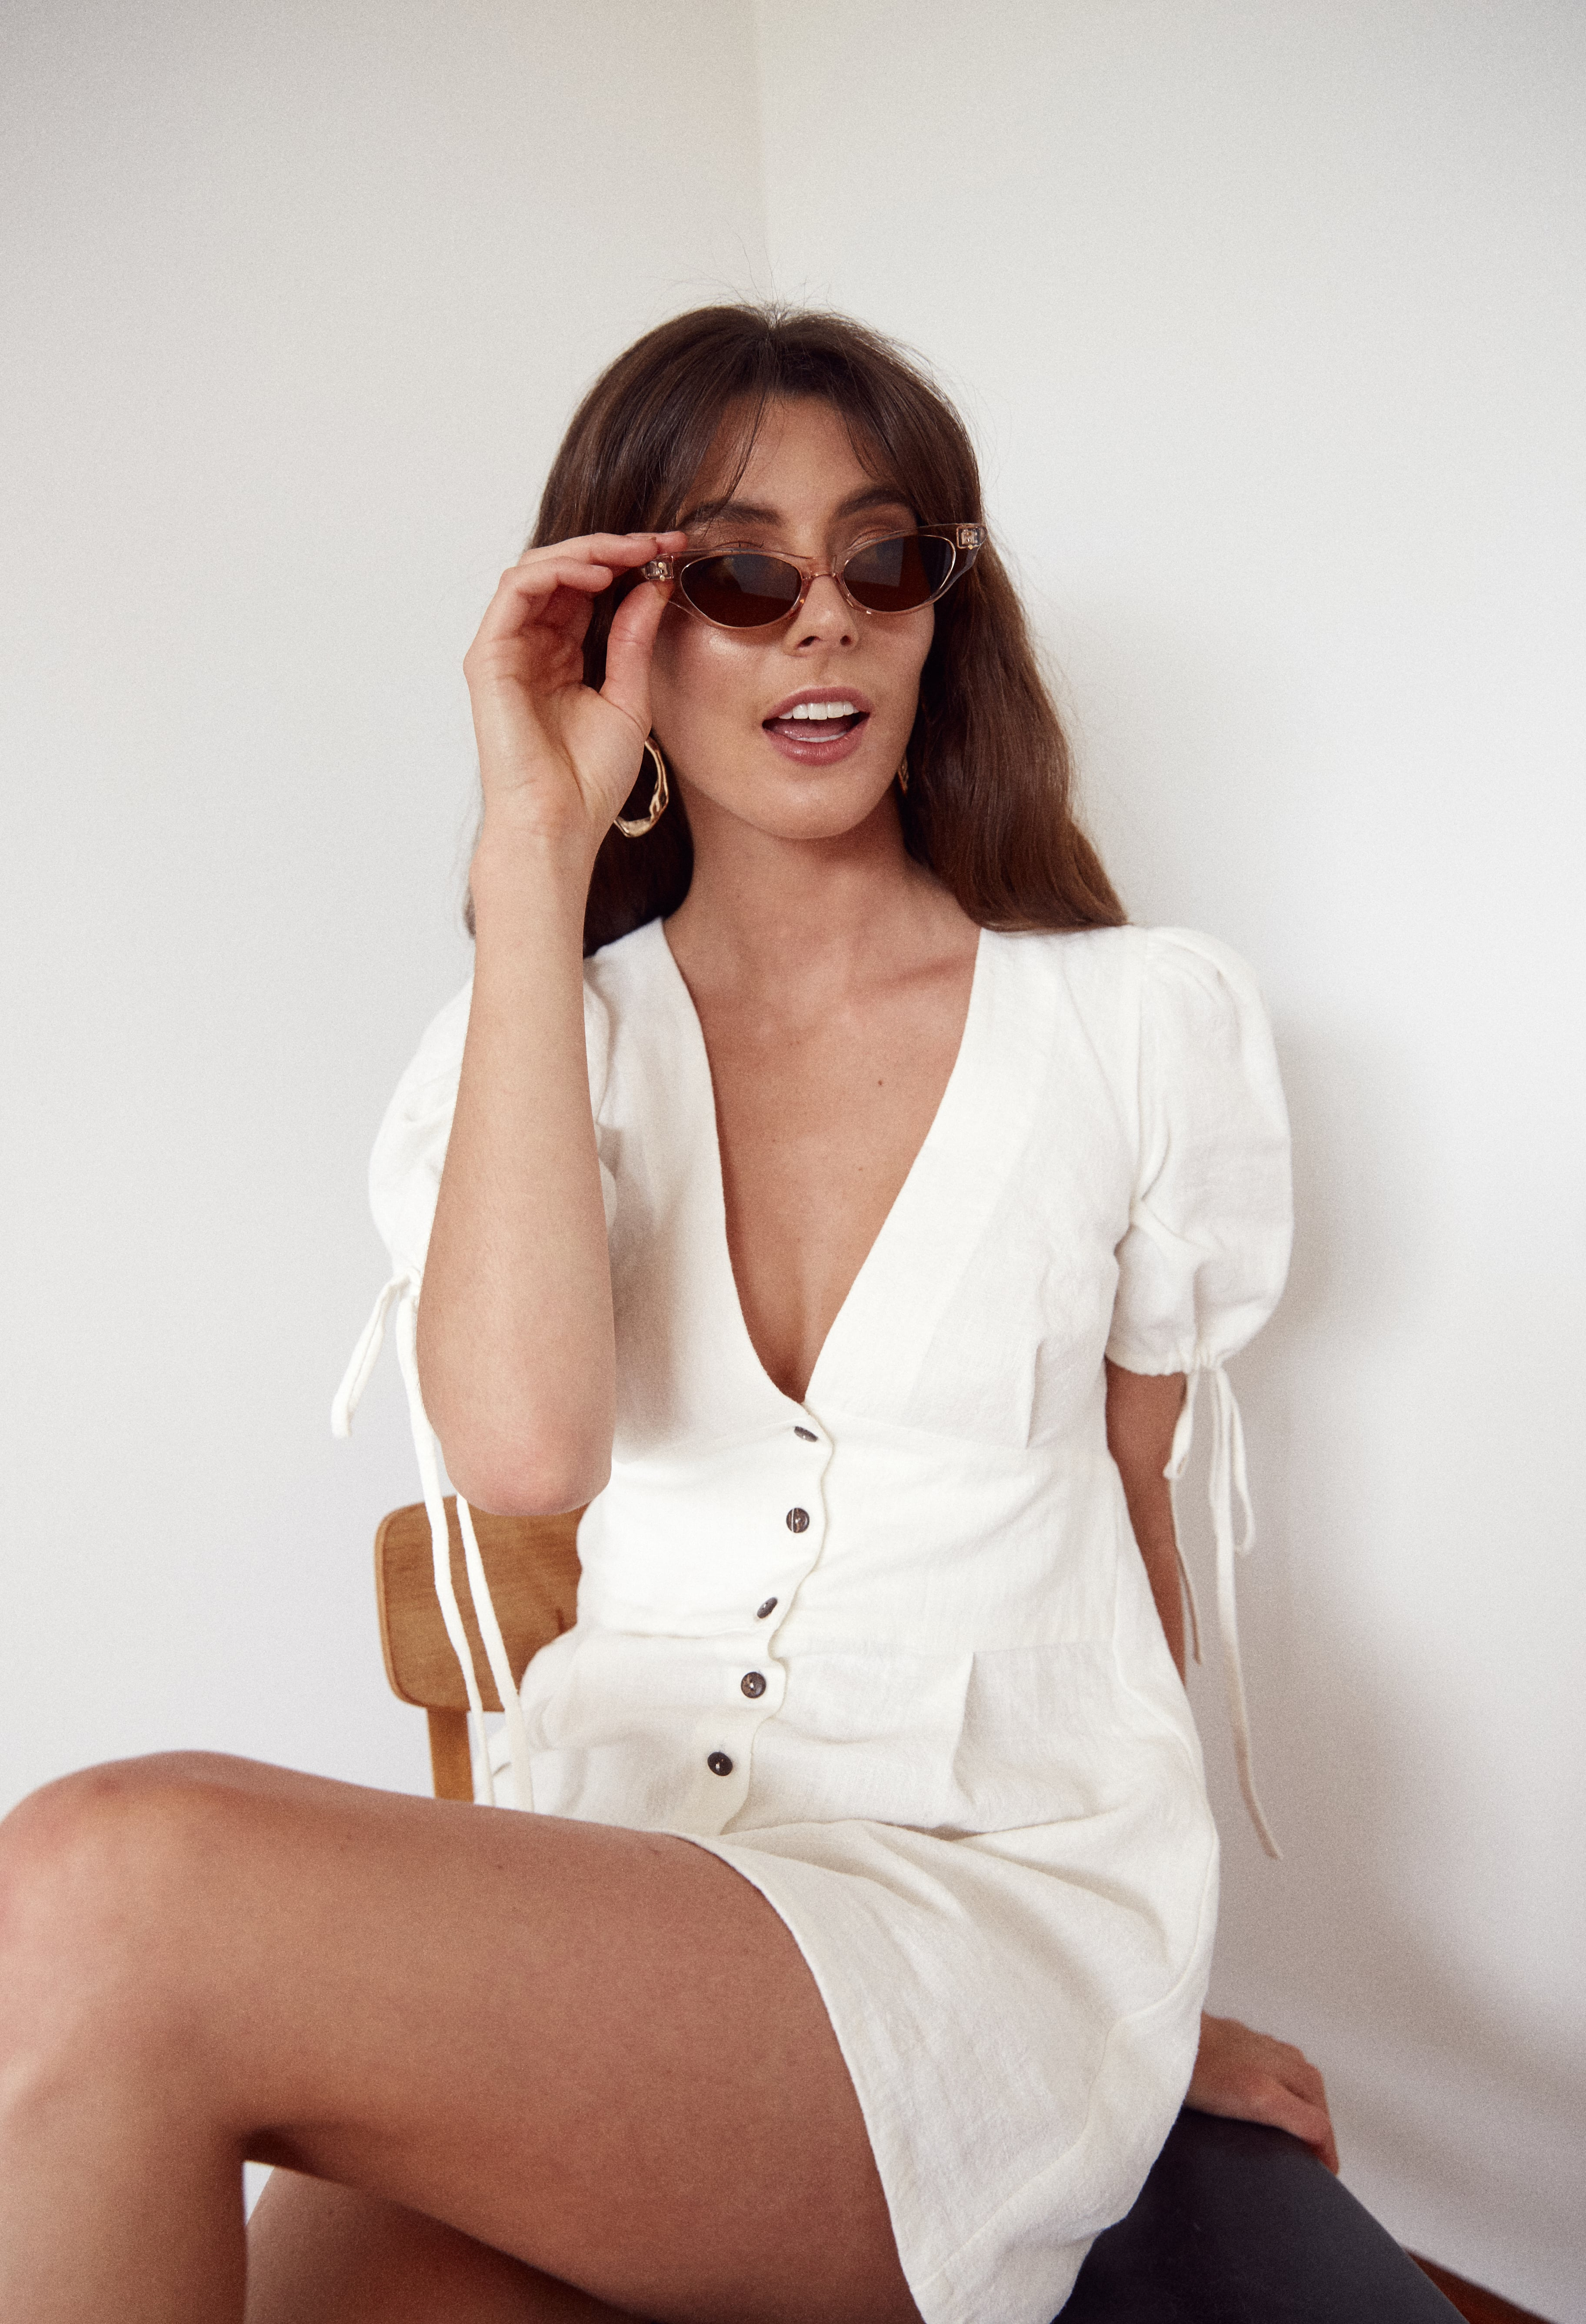 Model wearing cats-eye sunglasses